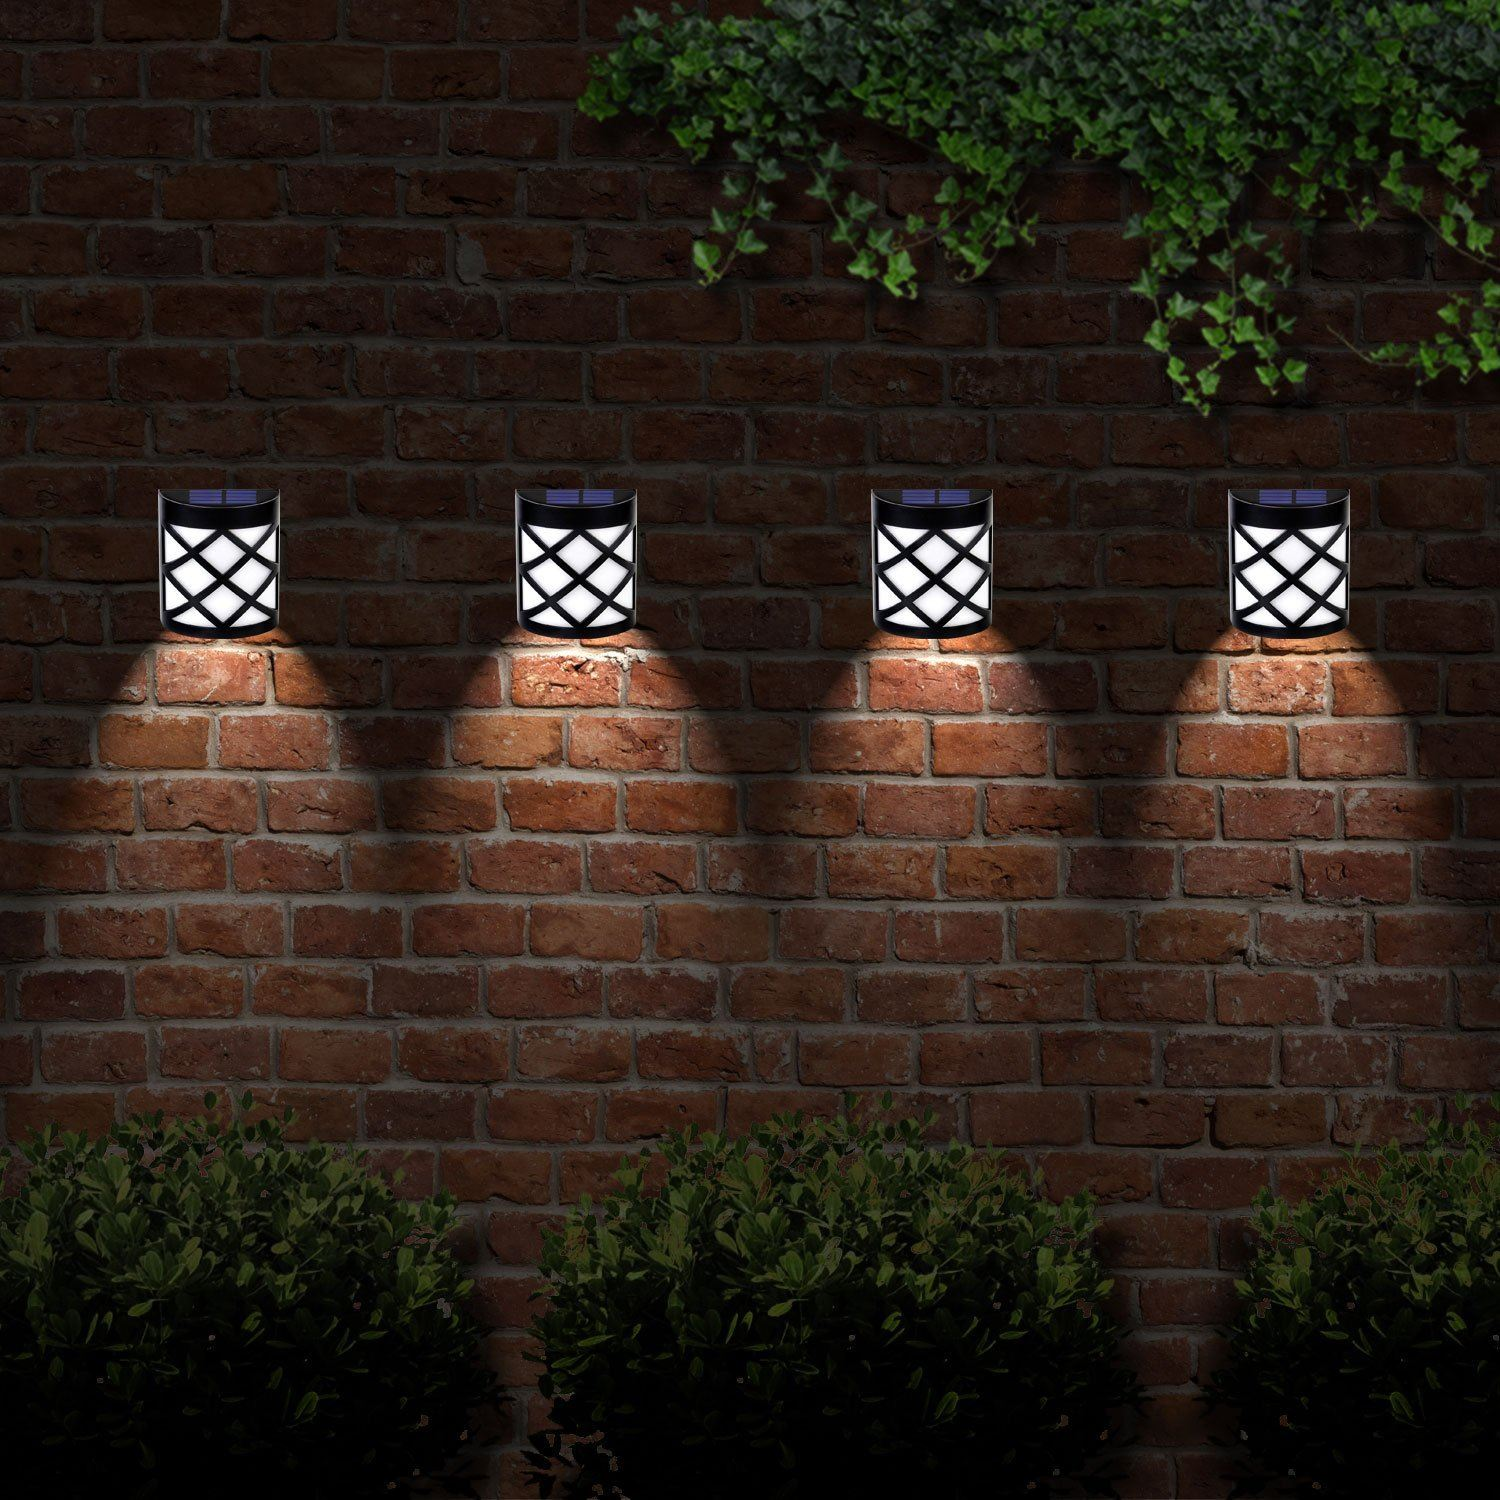 6 X Solalite? 6 Led Decorative Wireless Garden Solar Lights Weatherproof Outdoor Fence Lamps (6)